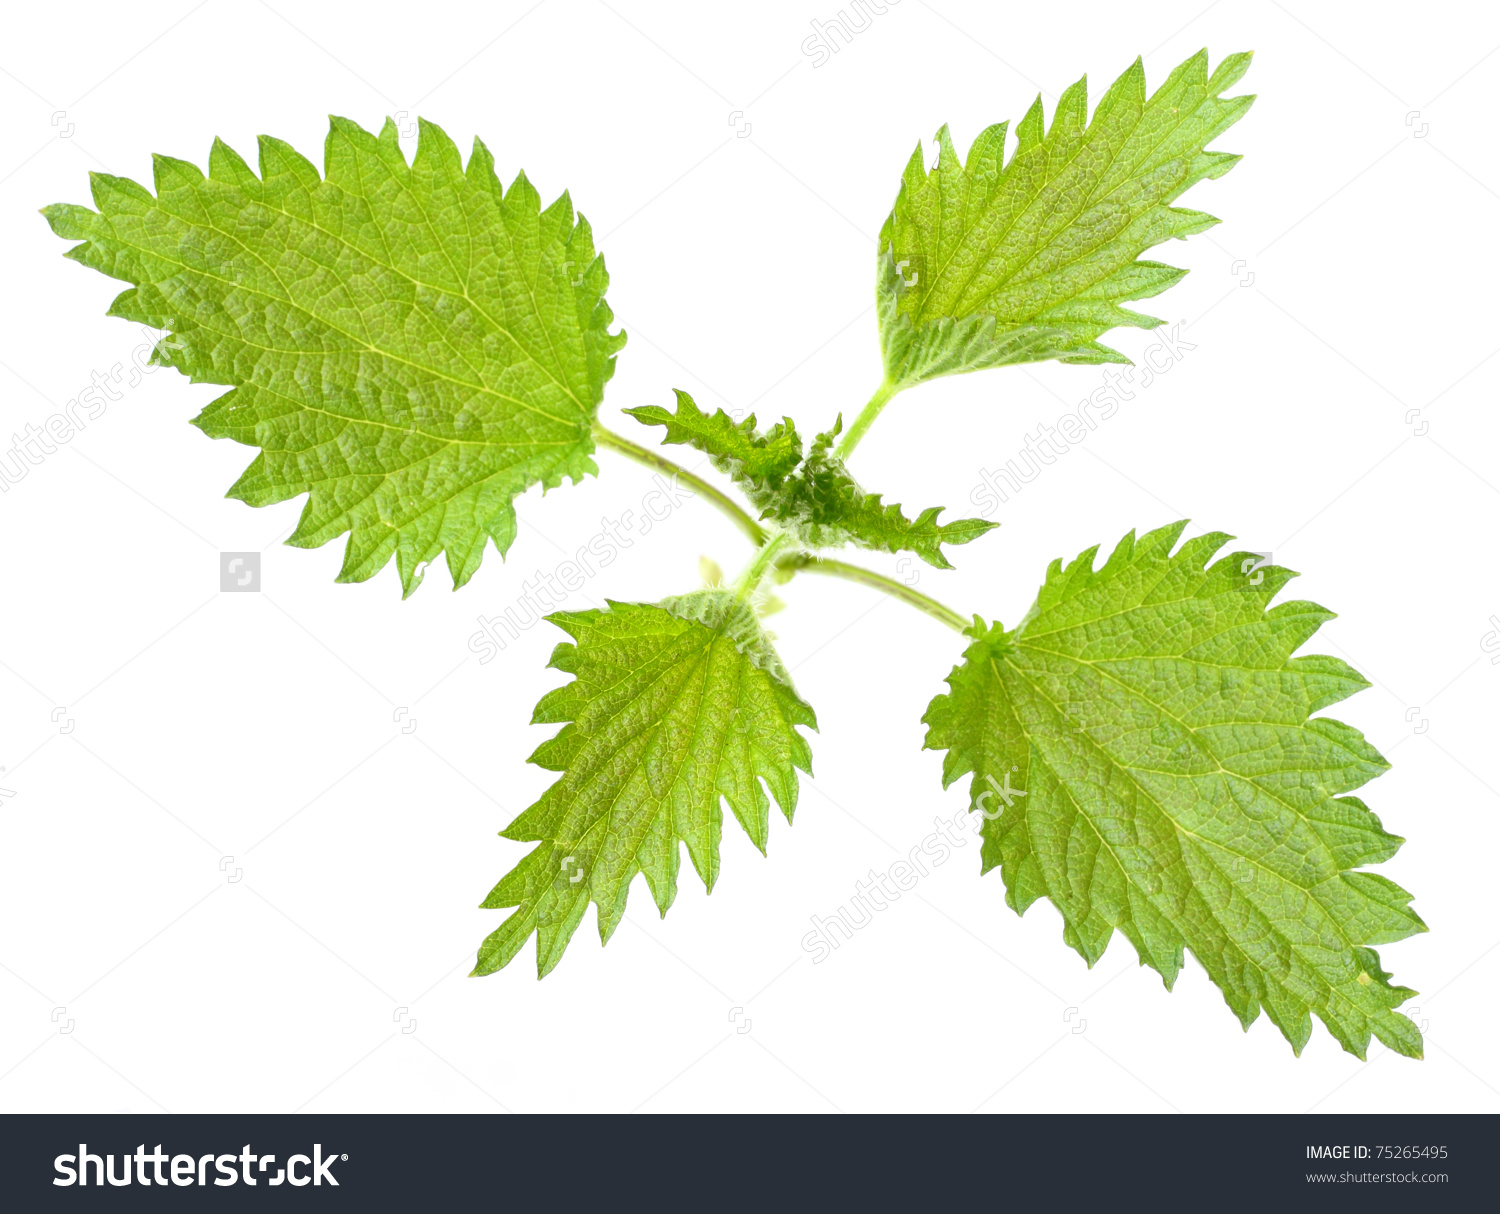 Stinging Nettle Urtica Dioica Rich Vitamins Stock Photo 75265495.